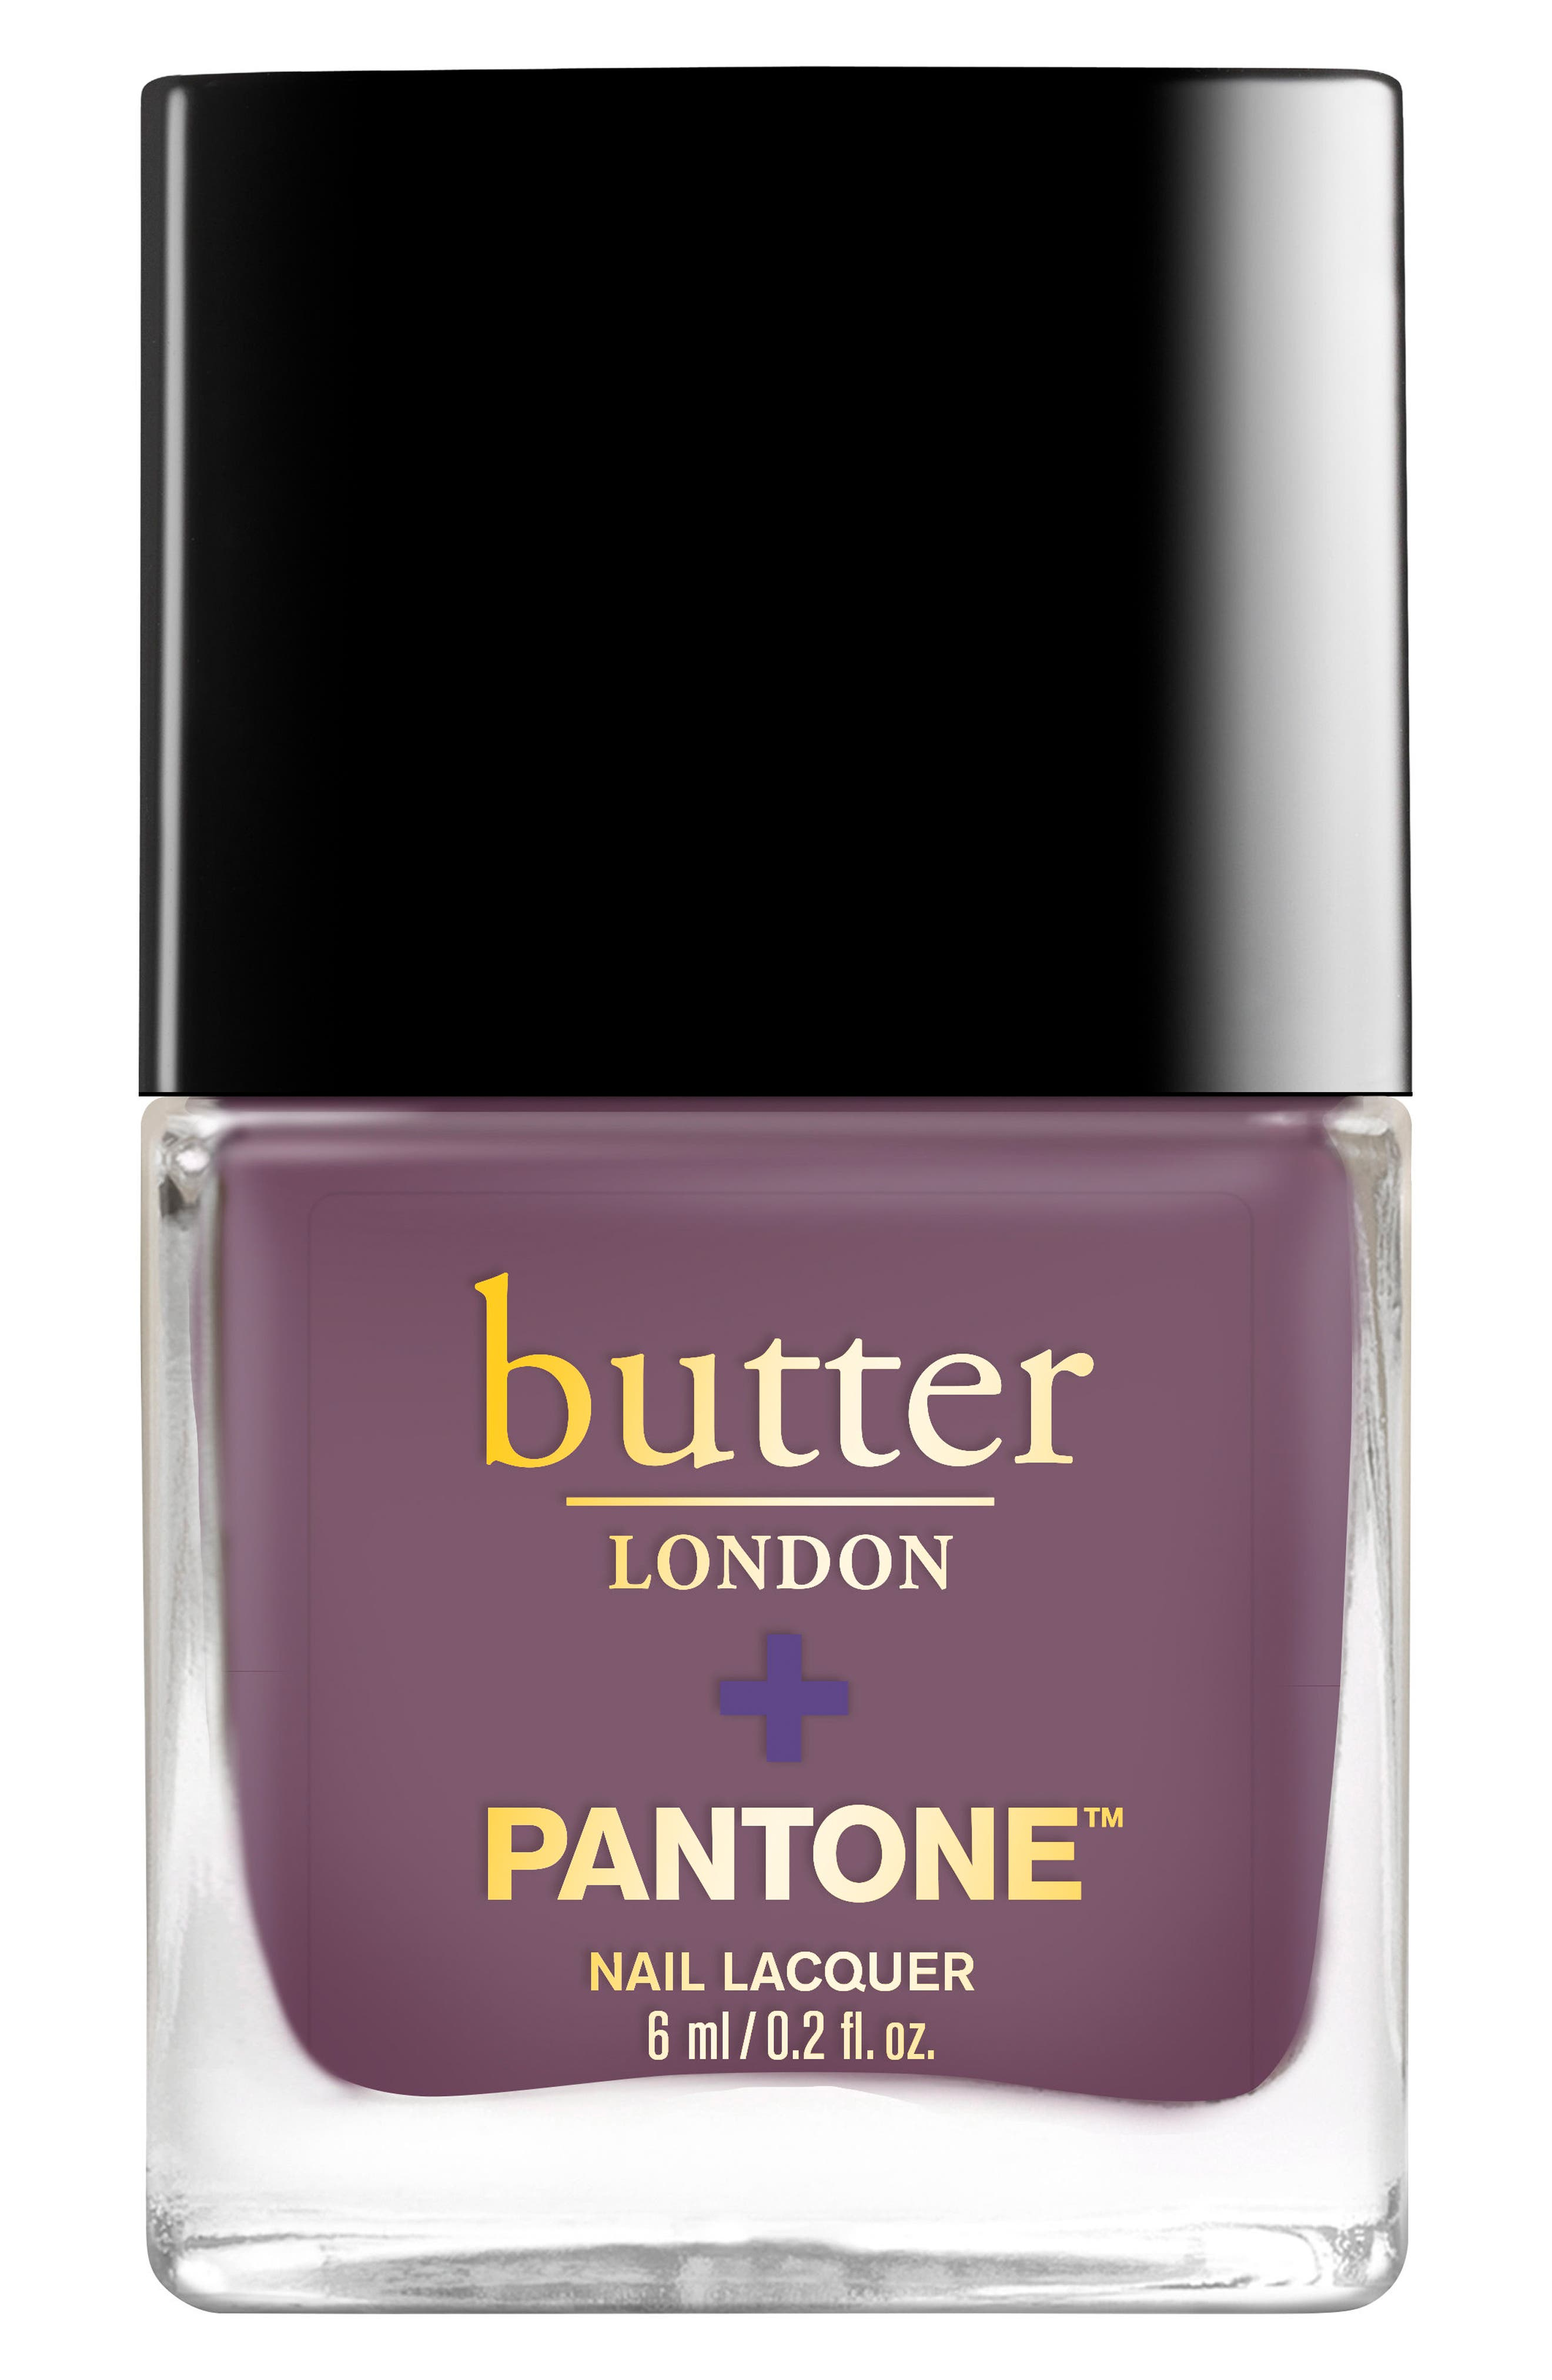 butter LONDON + Pantone™ Color of the Year 2018 Nail Lacquer (Limited Edition)